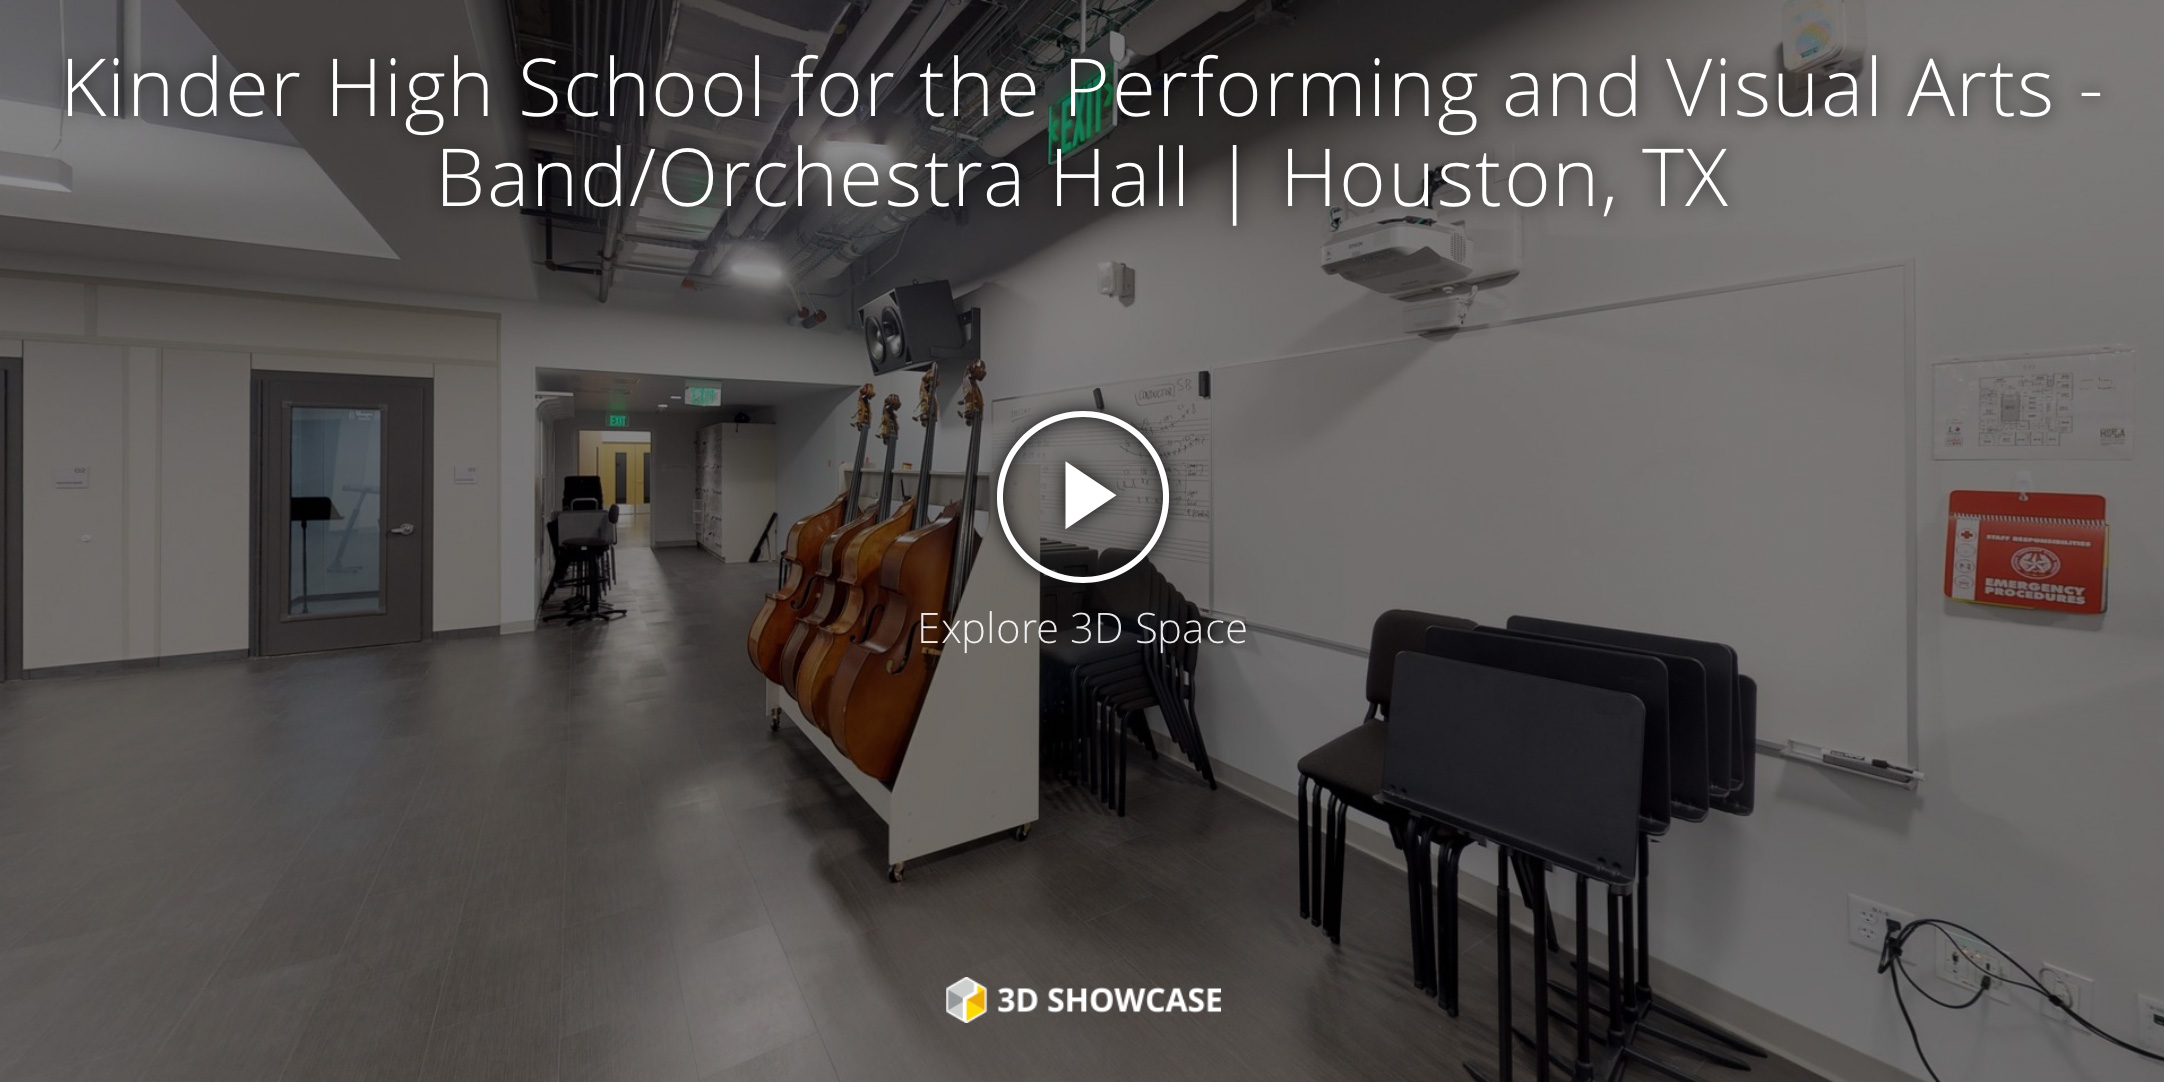 Kinder High School for the Performing and Visual Arts – Band/Orchestra Hall